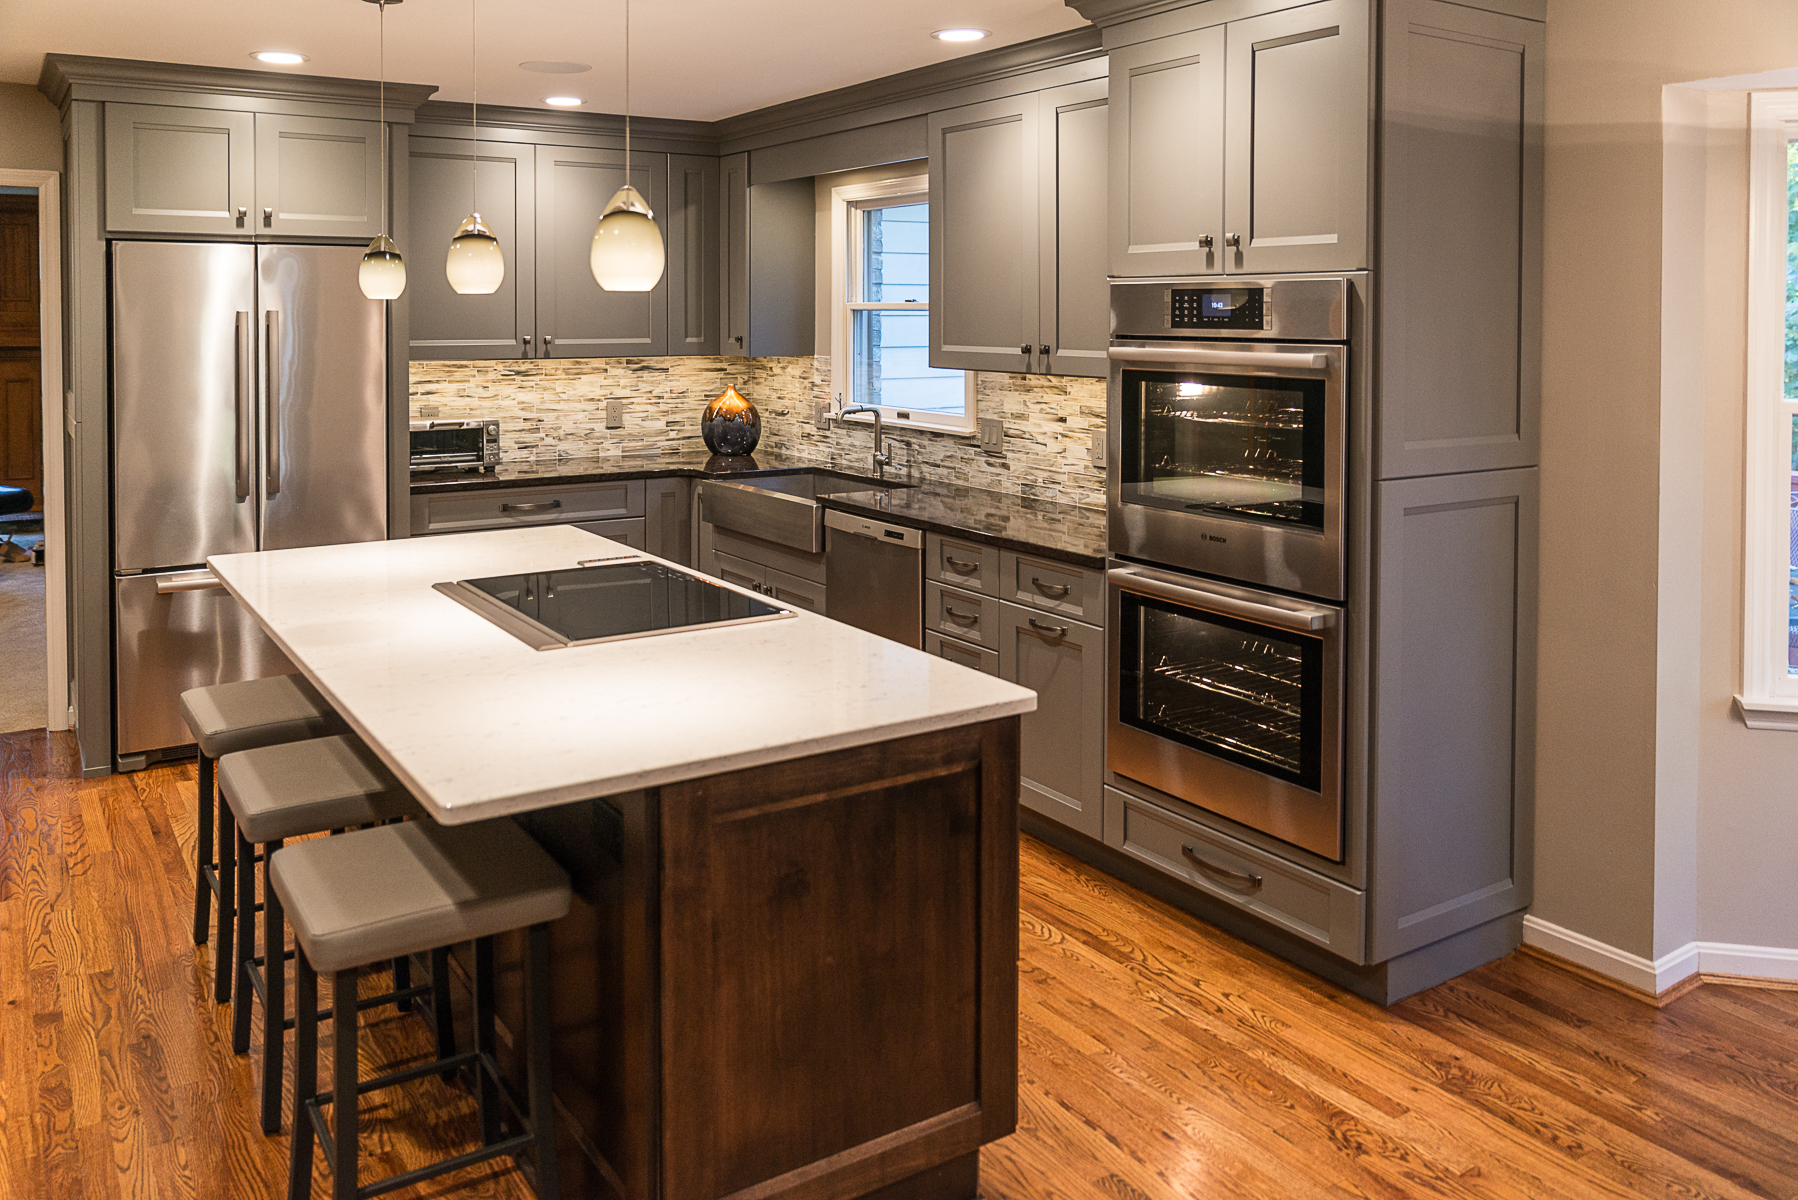 cincinnati remodeling contractor does everything from kitchens to bathrooms to outdoor living areas kitchen cabinets cincinnati Cincinnati Remodeling Contractor Does Everything from Kitchens to Bathrooms to Outdoor Living Areas November 19